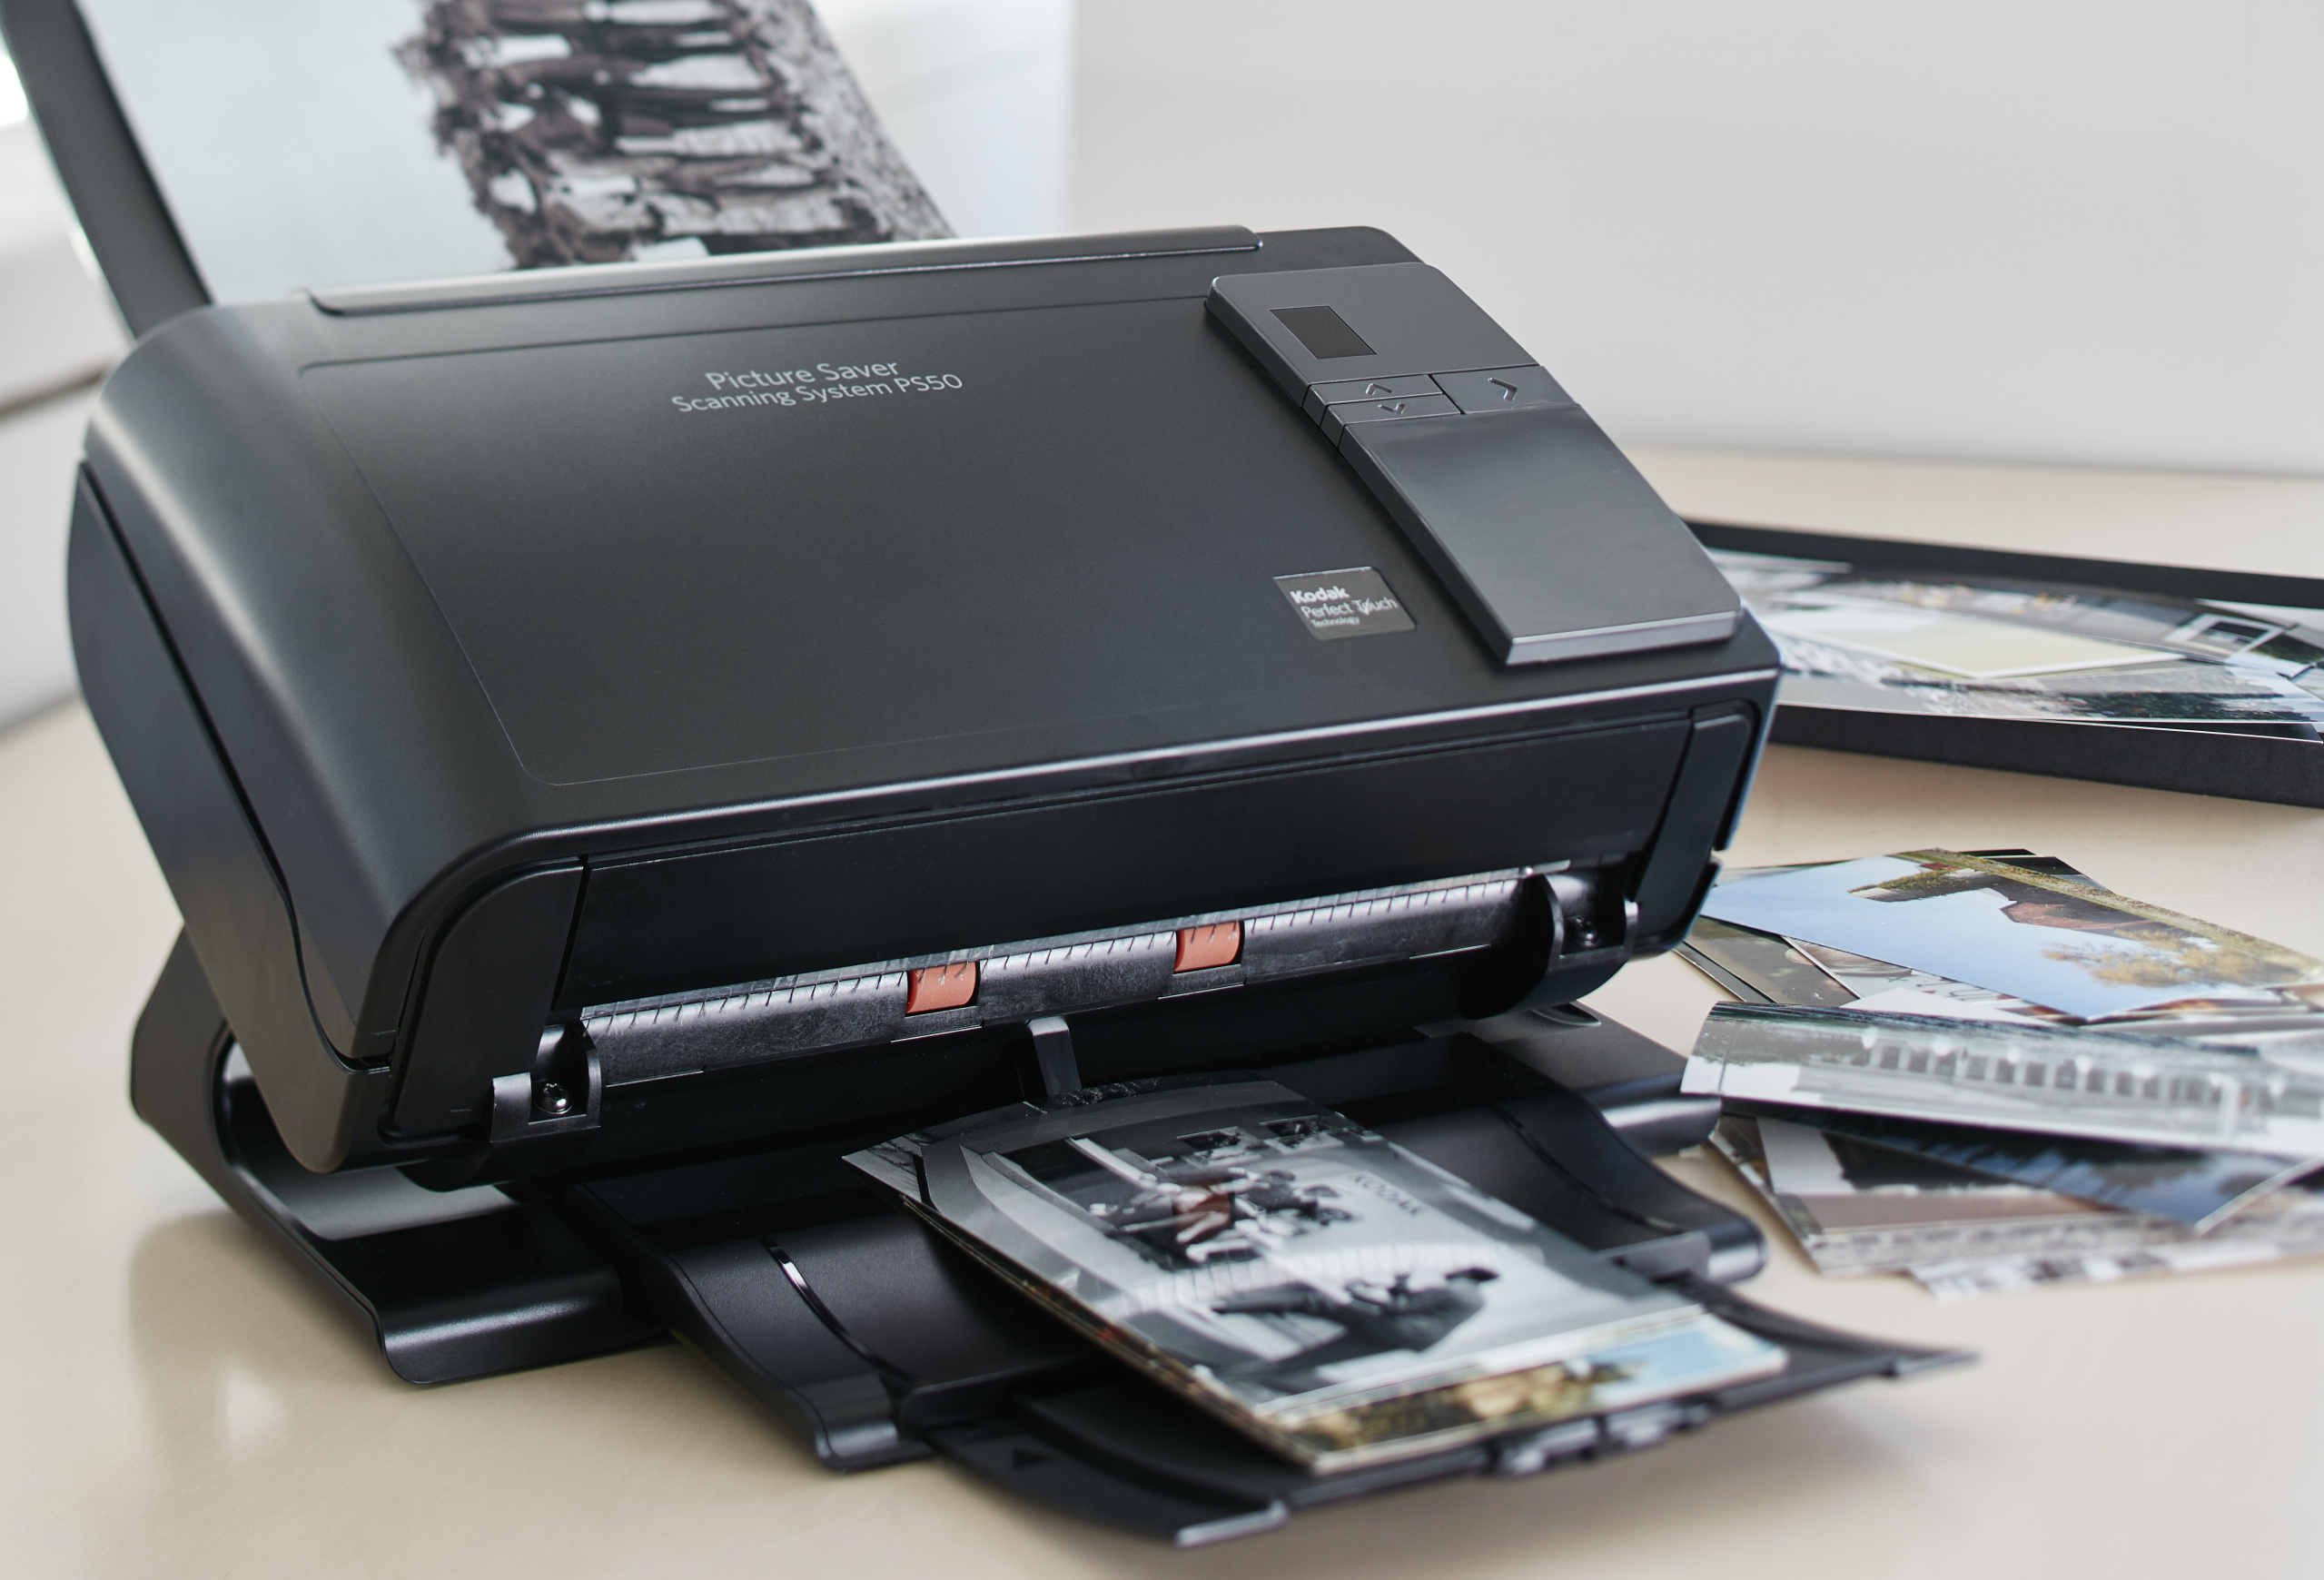 Picture Saver Scanning System Ps50ps80 Support Drivers And Manuals